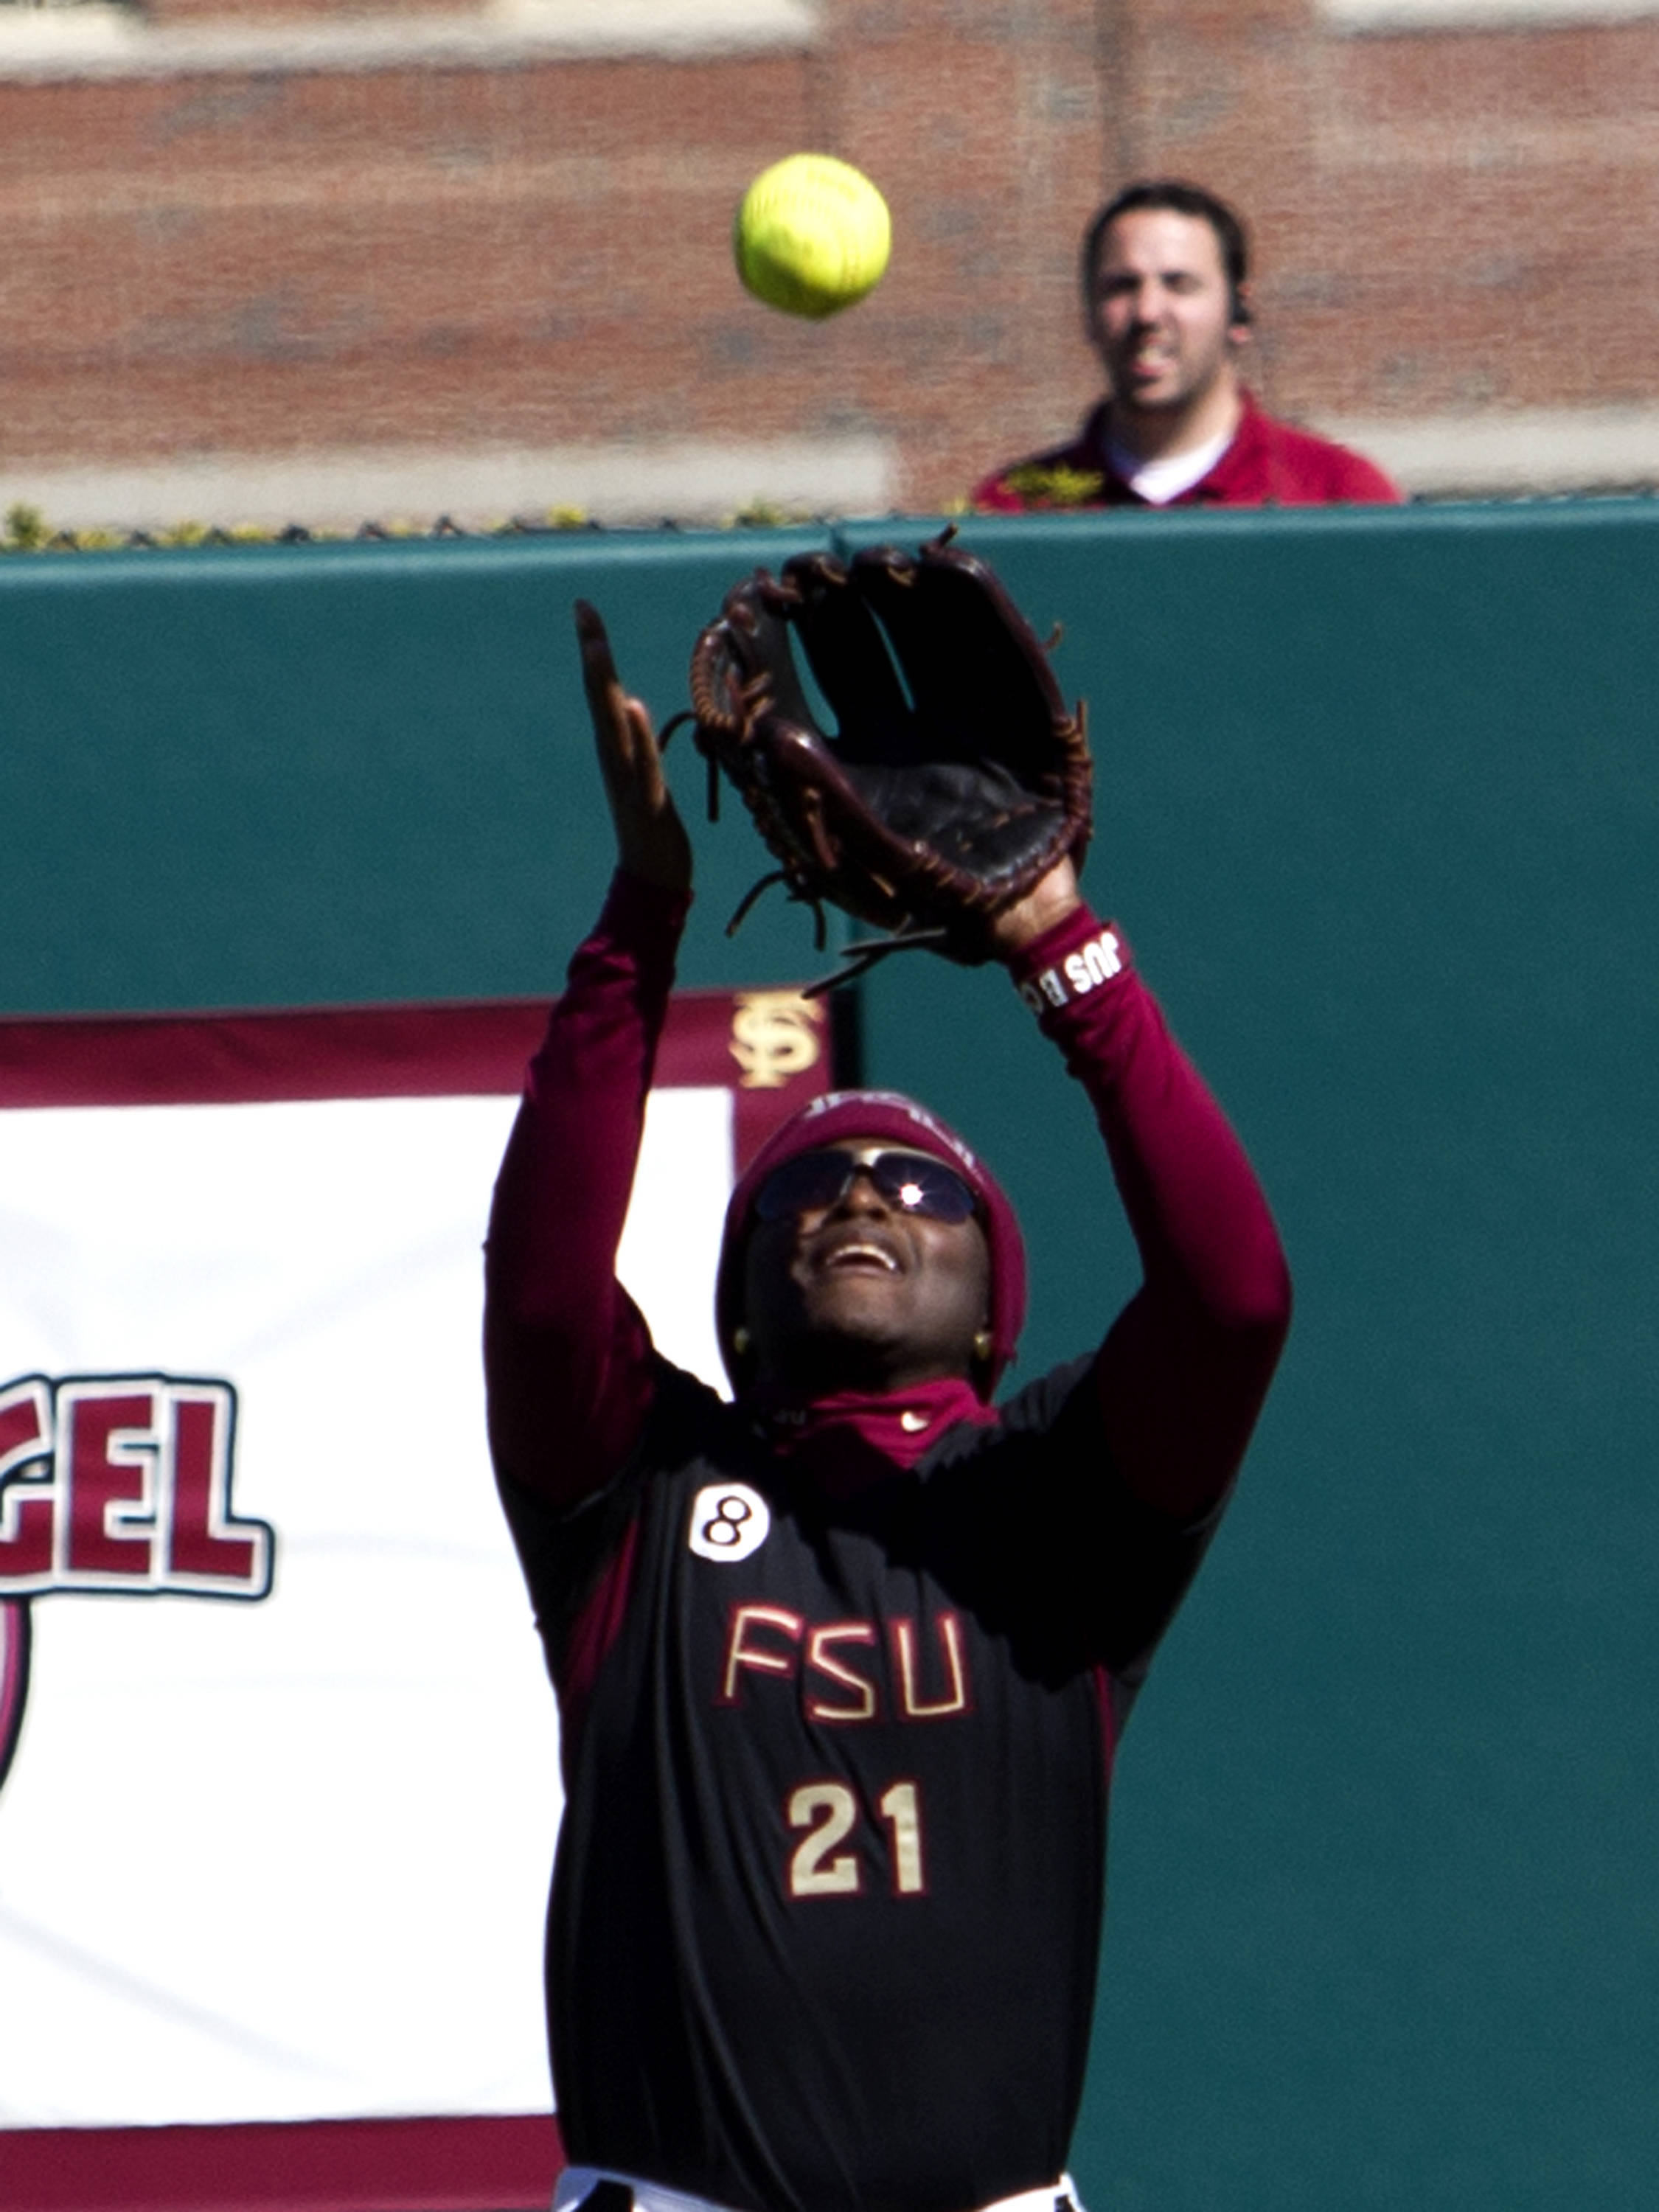 Morgan Bullock (21), FSU vs Tulsa, 02/17/13. (Photo by Steve Musco)